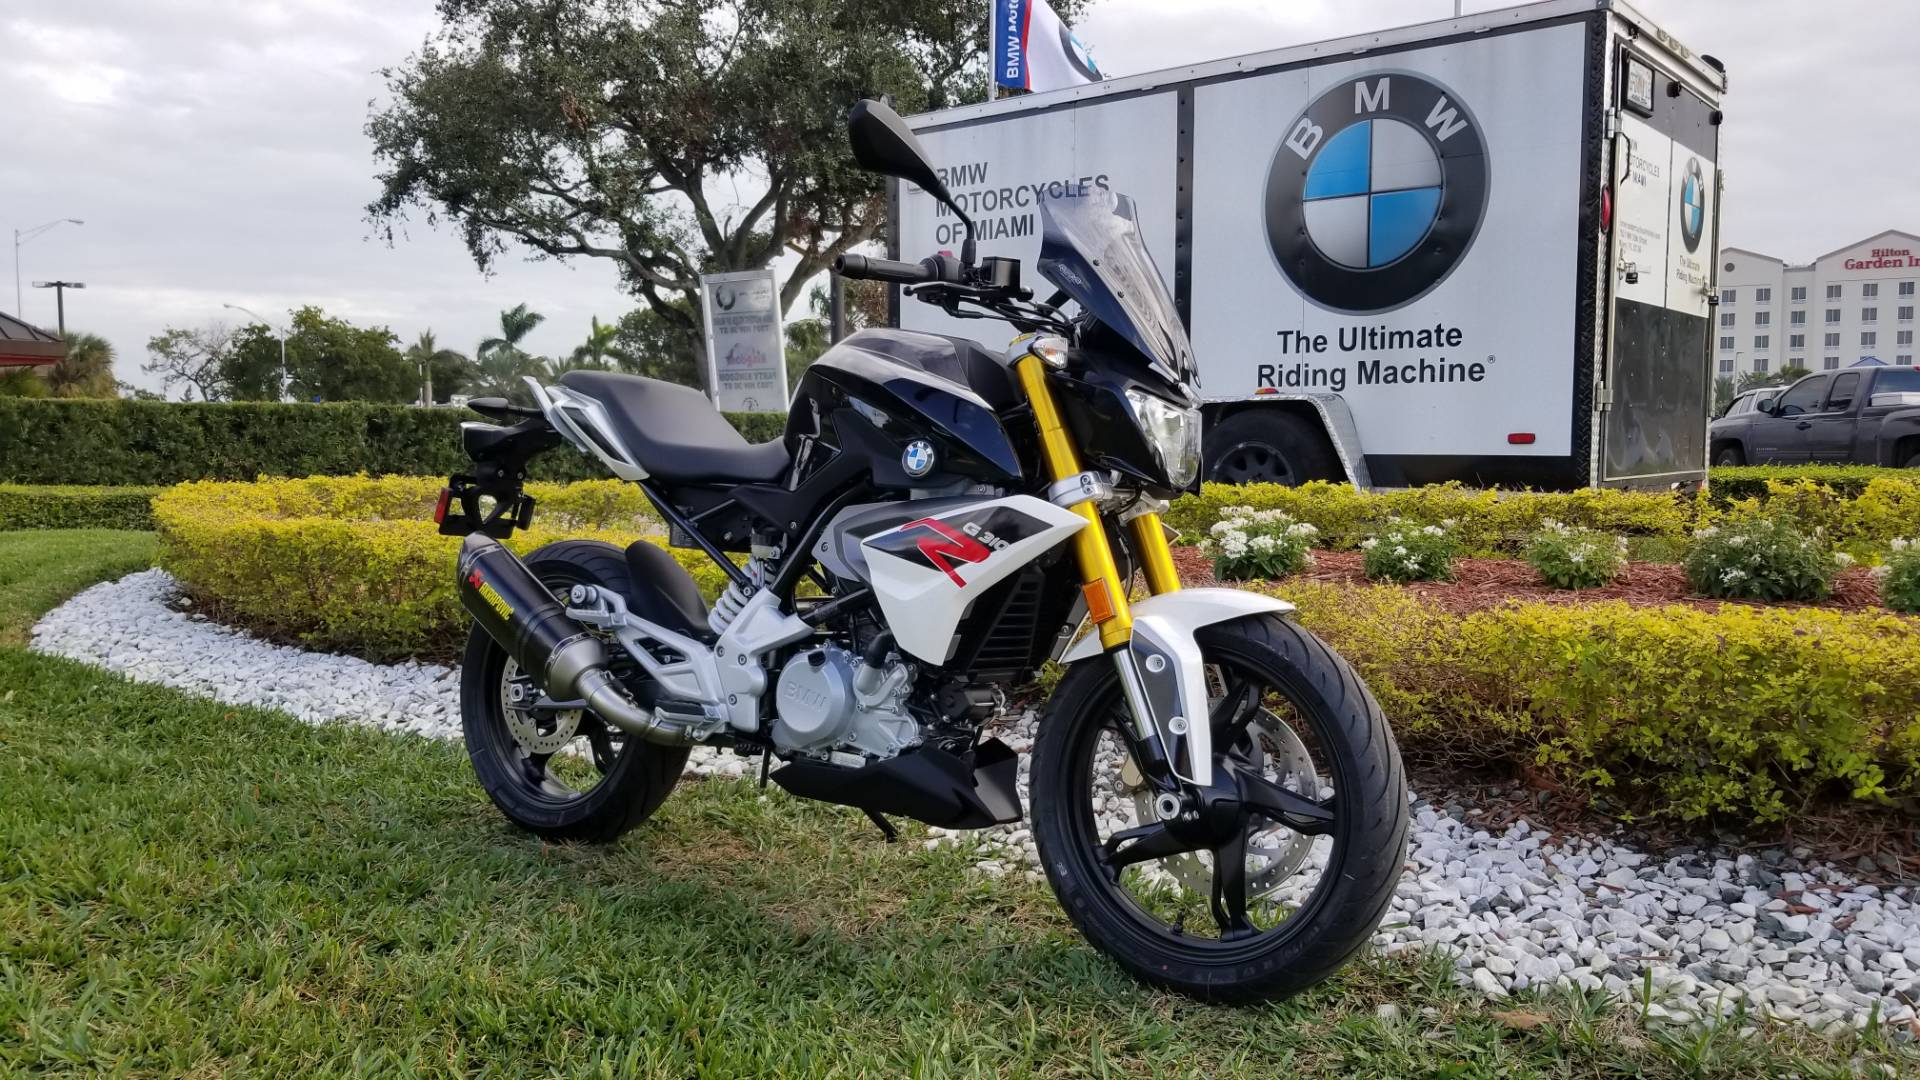 New 2018 BMW G 310 R For Sale, BMW G 310R For Sale, BMW Motorcycle G310R, new BMW Motorcycle, 310, 310R, BMW